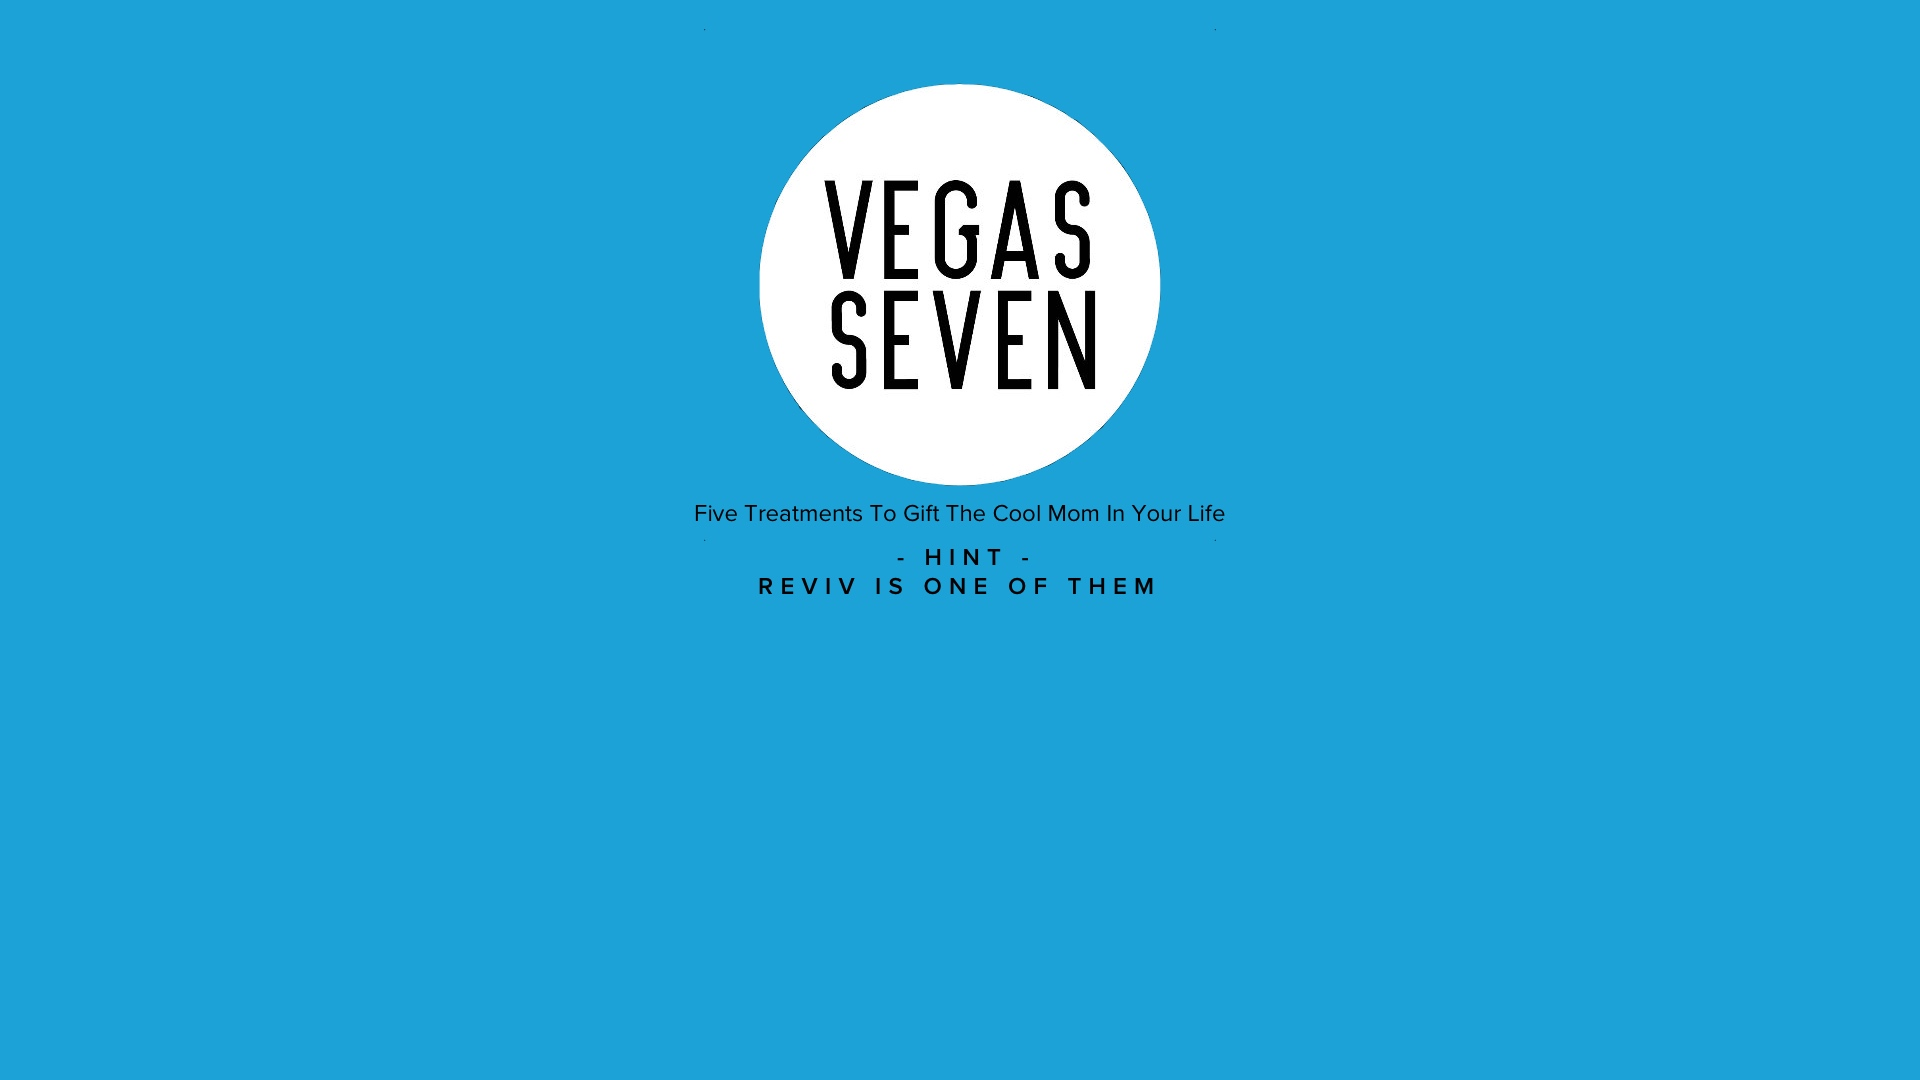 Cool Gift Ideas For Mother's Day From Vegas Seven